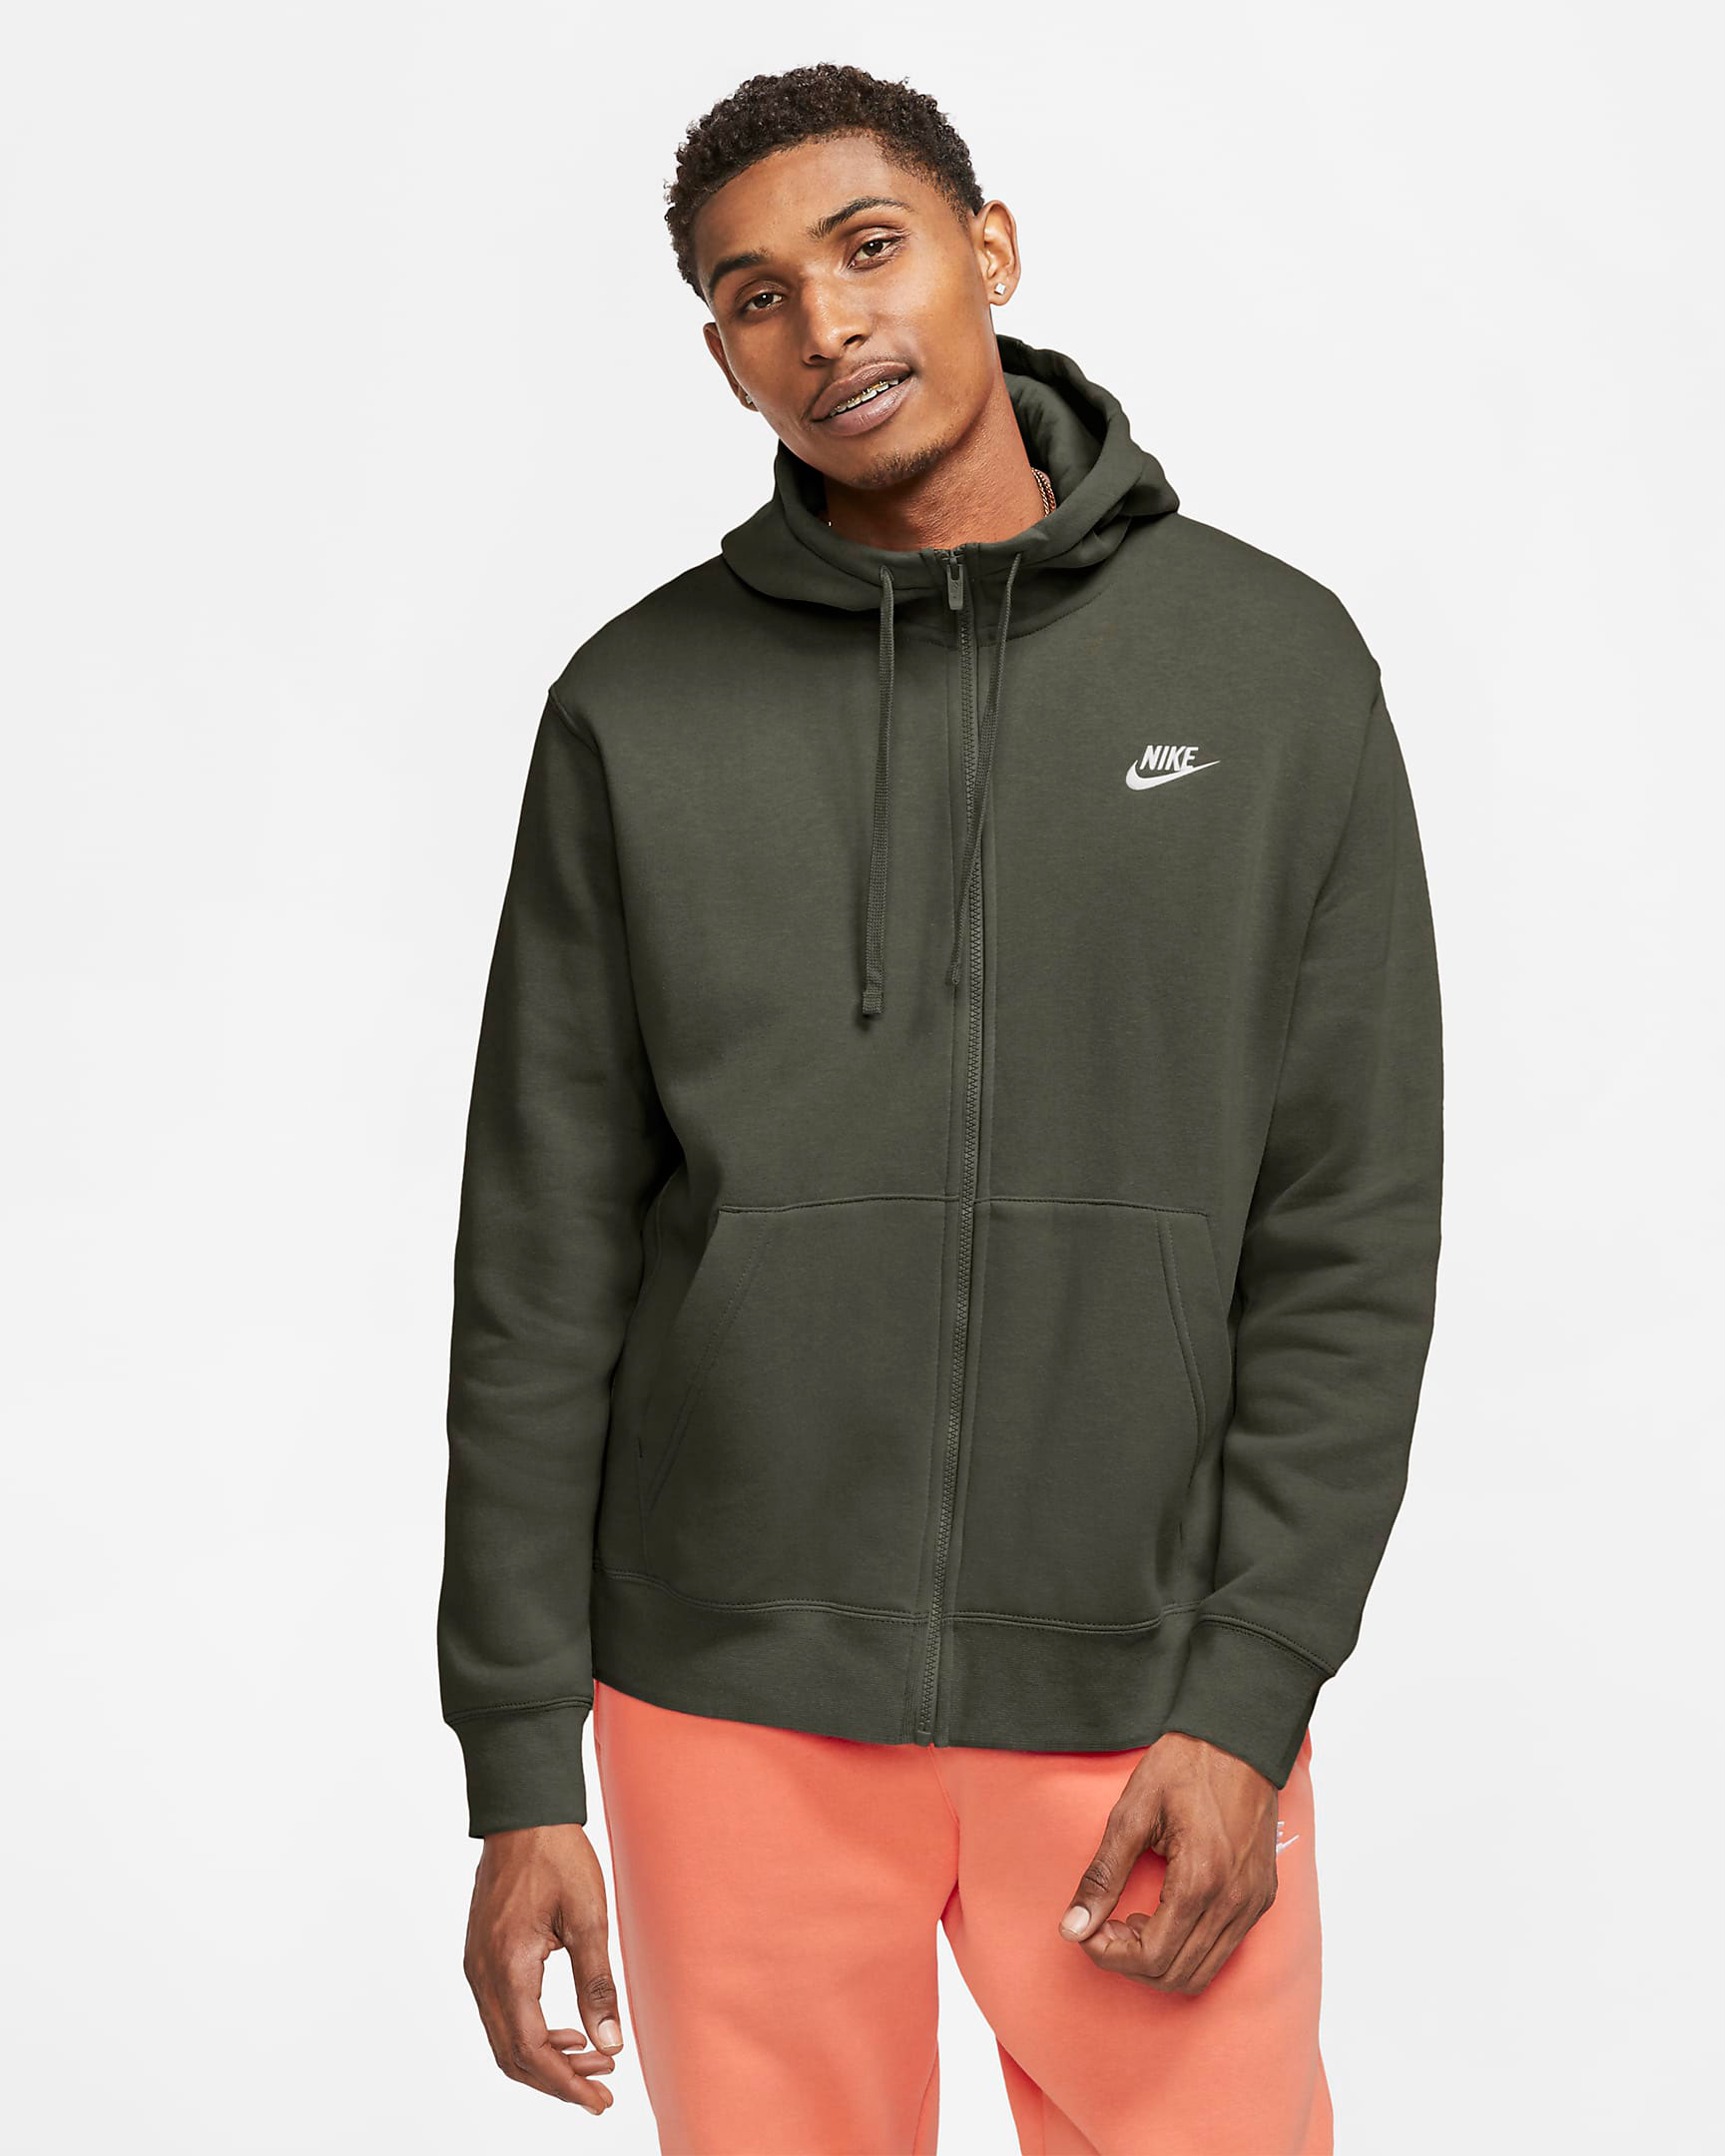 nike-club-fleece-zip-hoodie-twilight-marsh-olive-green